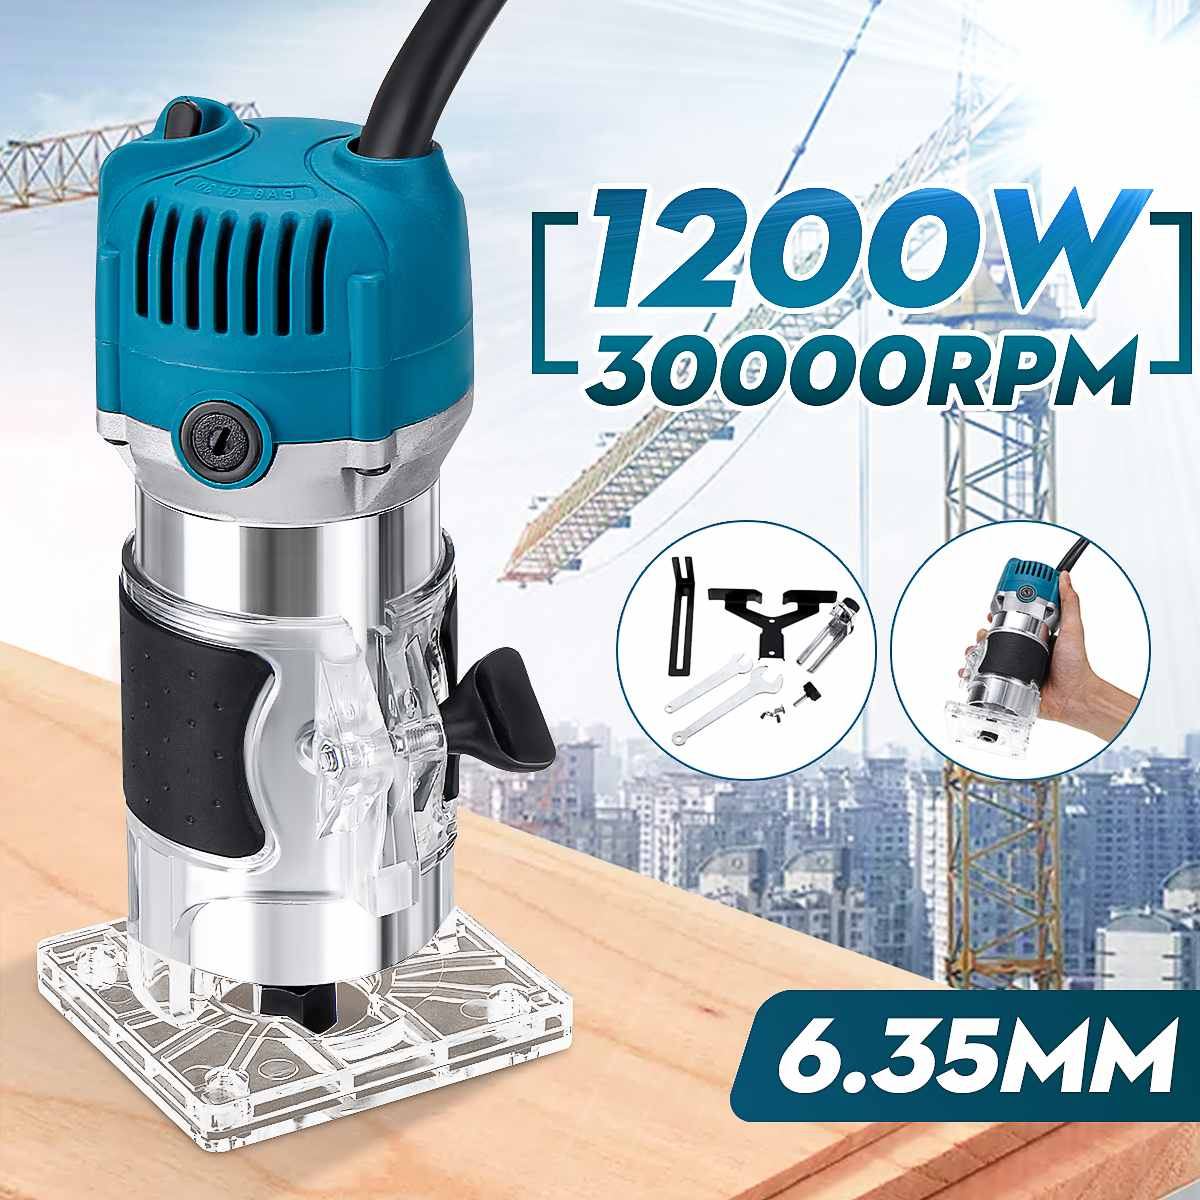 Electric Trimmer 1200W 30000r/min Electric Wood Laminate Edge Hand Trimmer Router Joiners Set Woodworking 6.35mm Collet Carving